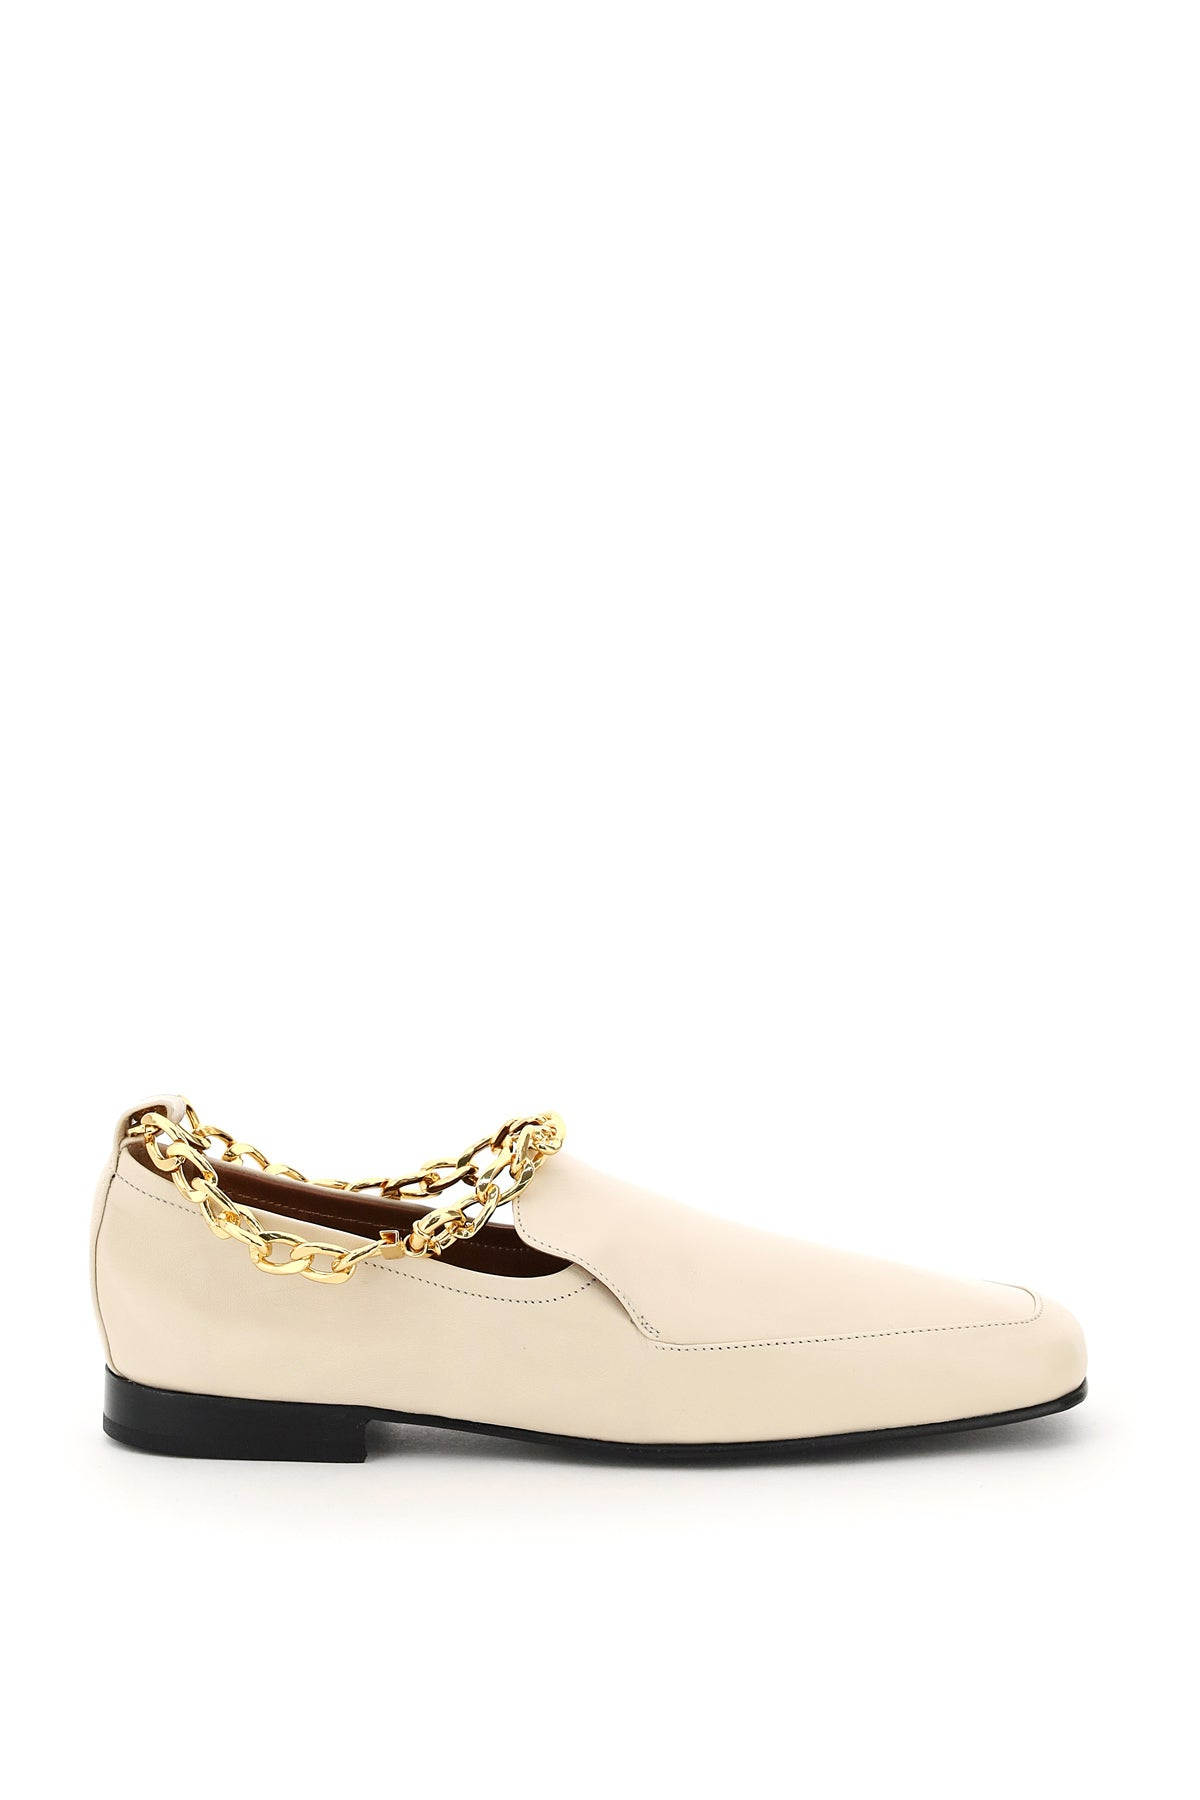 By Far Leathers BY FAR NICK CHAIN LOAFERS